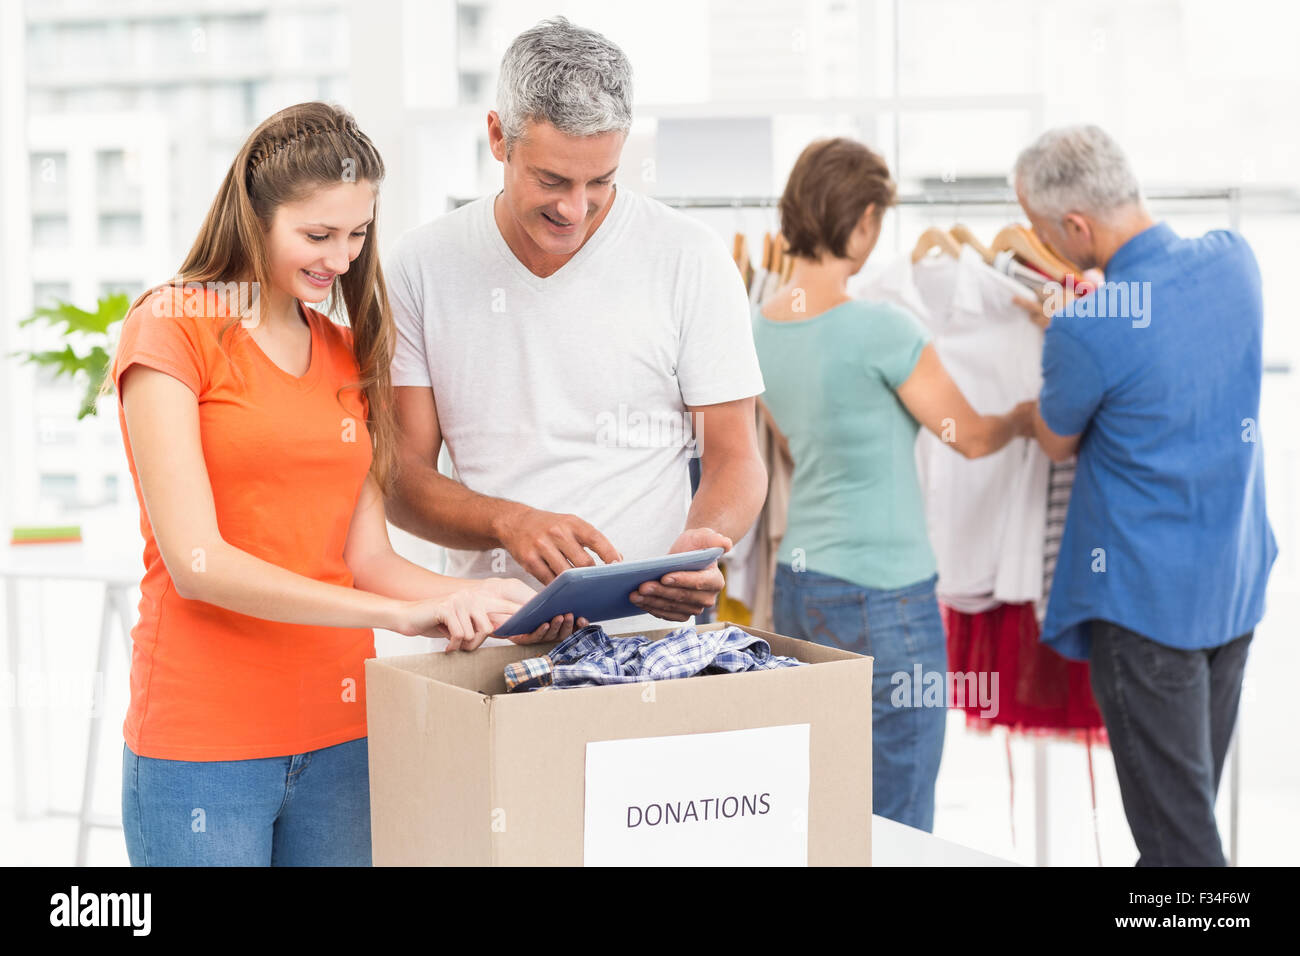 Smiling casual business people sorting donations - Stock Image